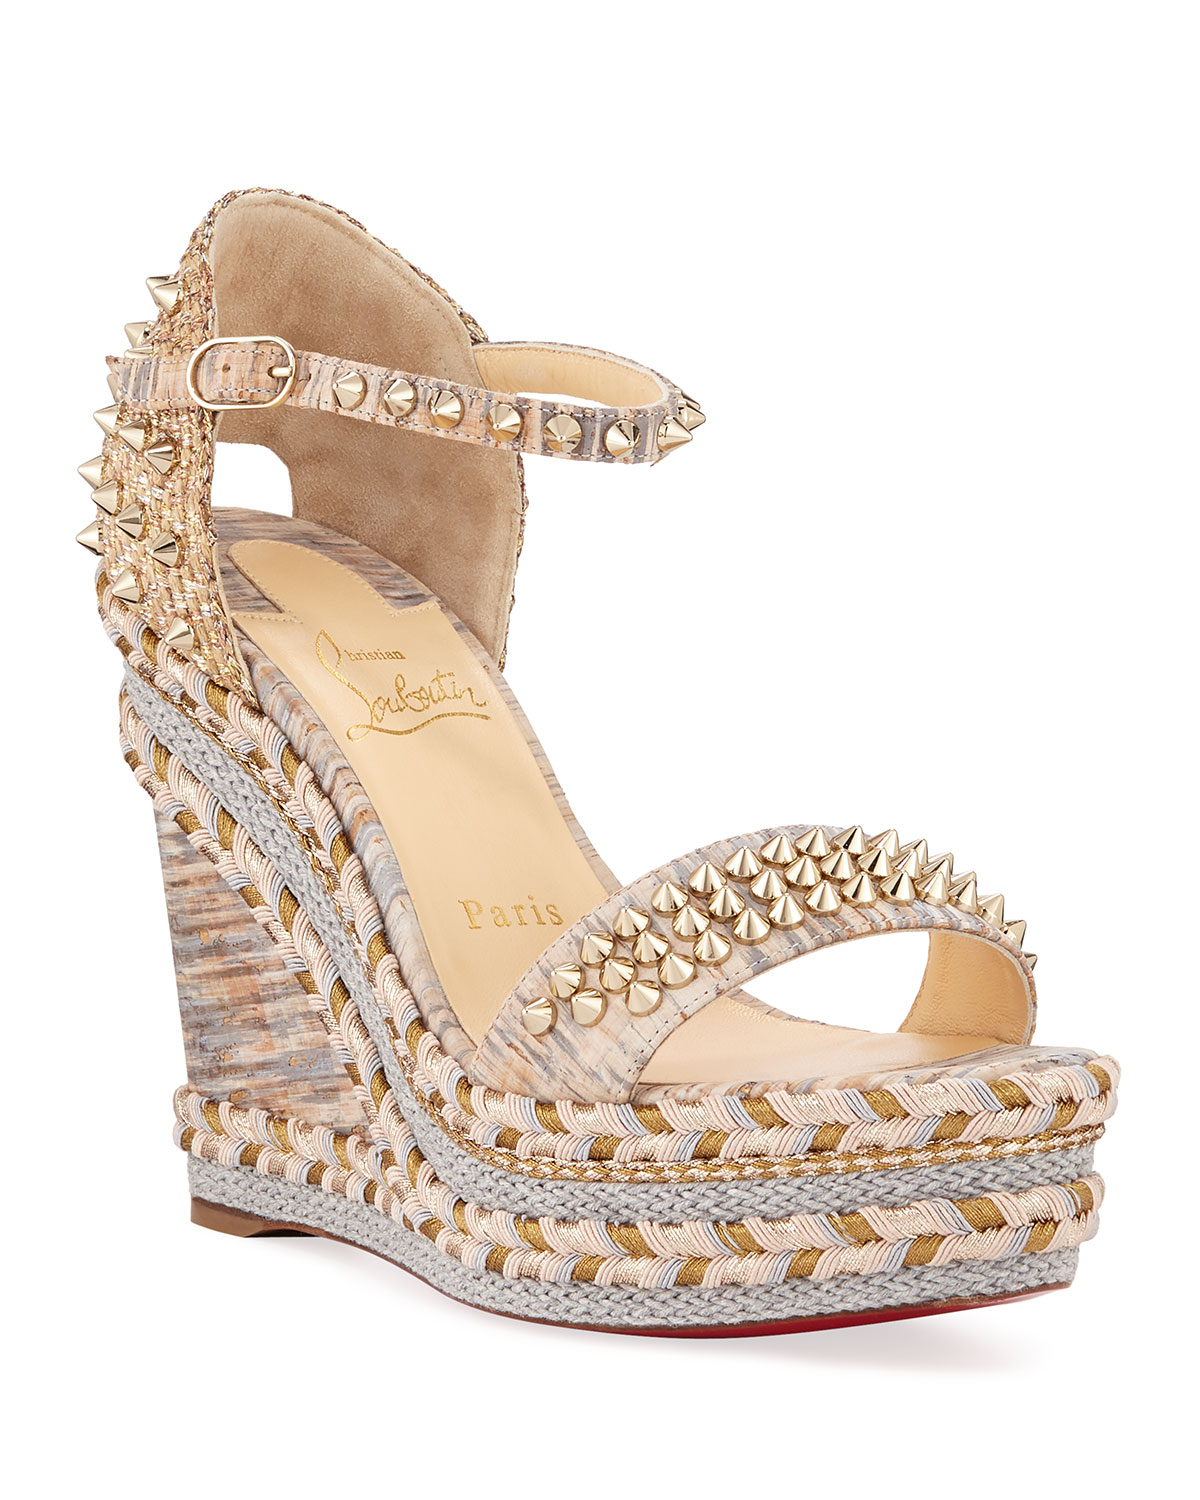 8d54971c1205 Christian LouboutinMadmonica 120mm Spiked Liege Cork Wedge Red Sole Sandals